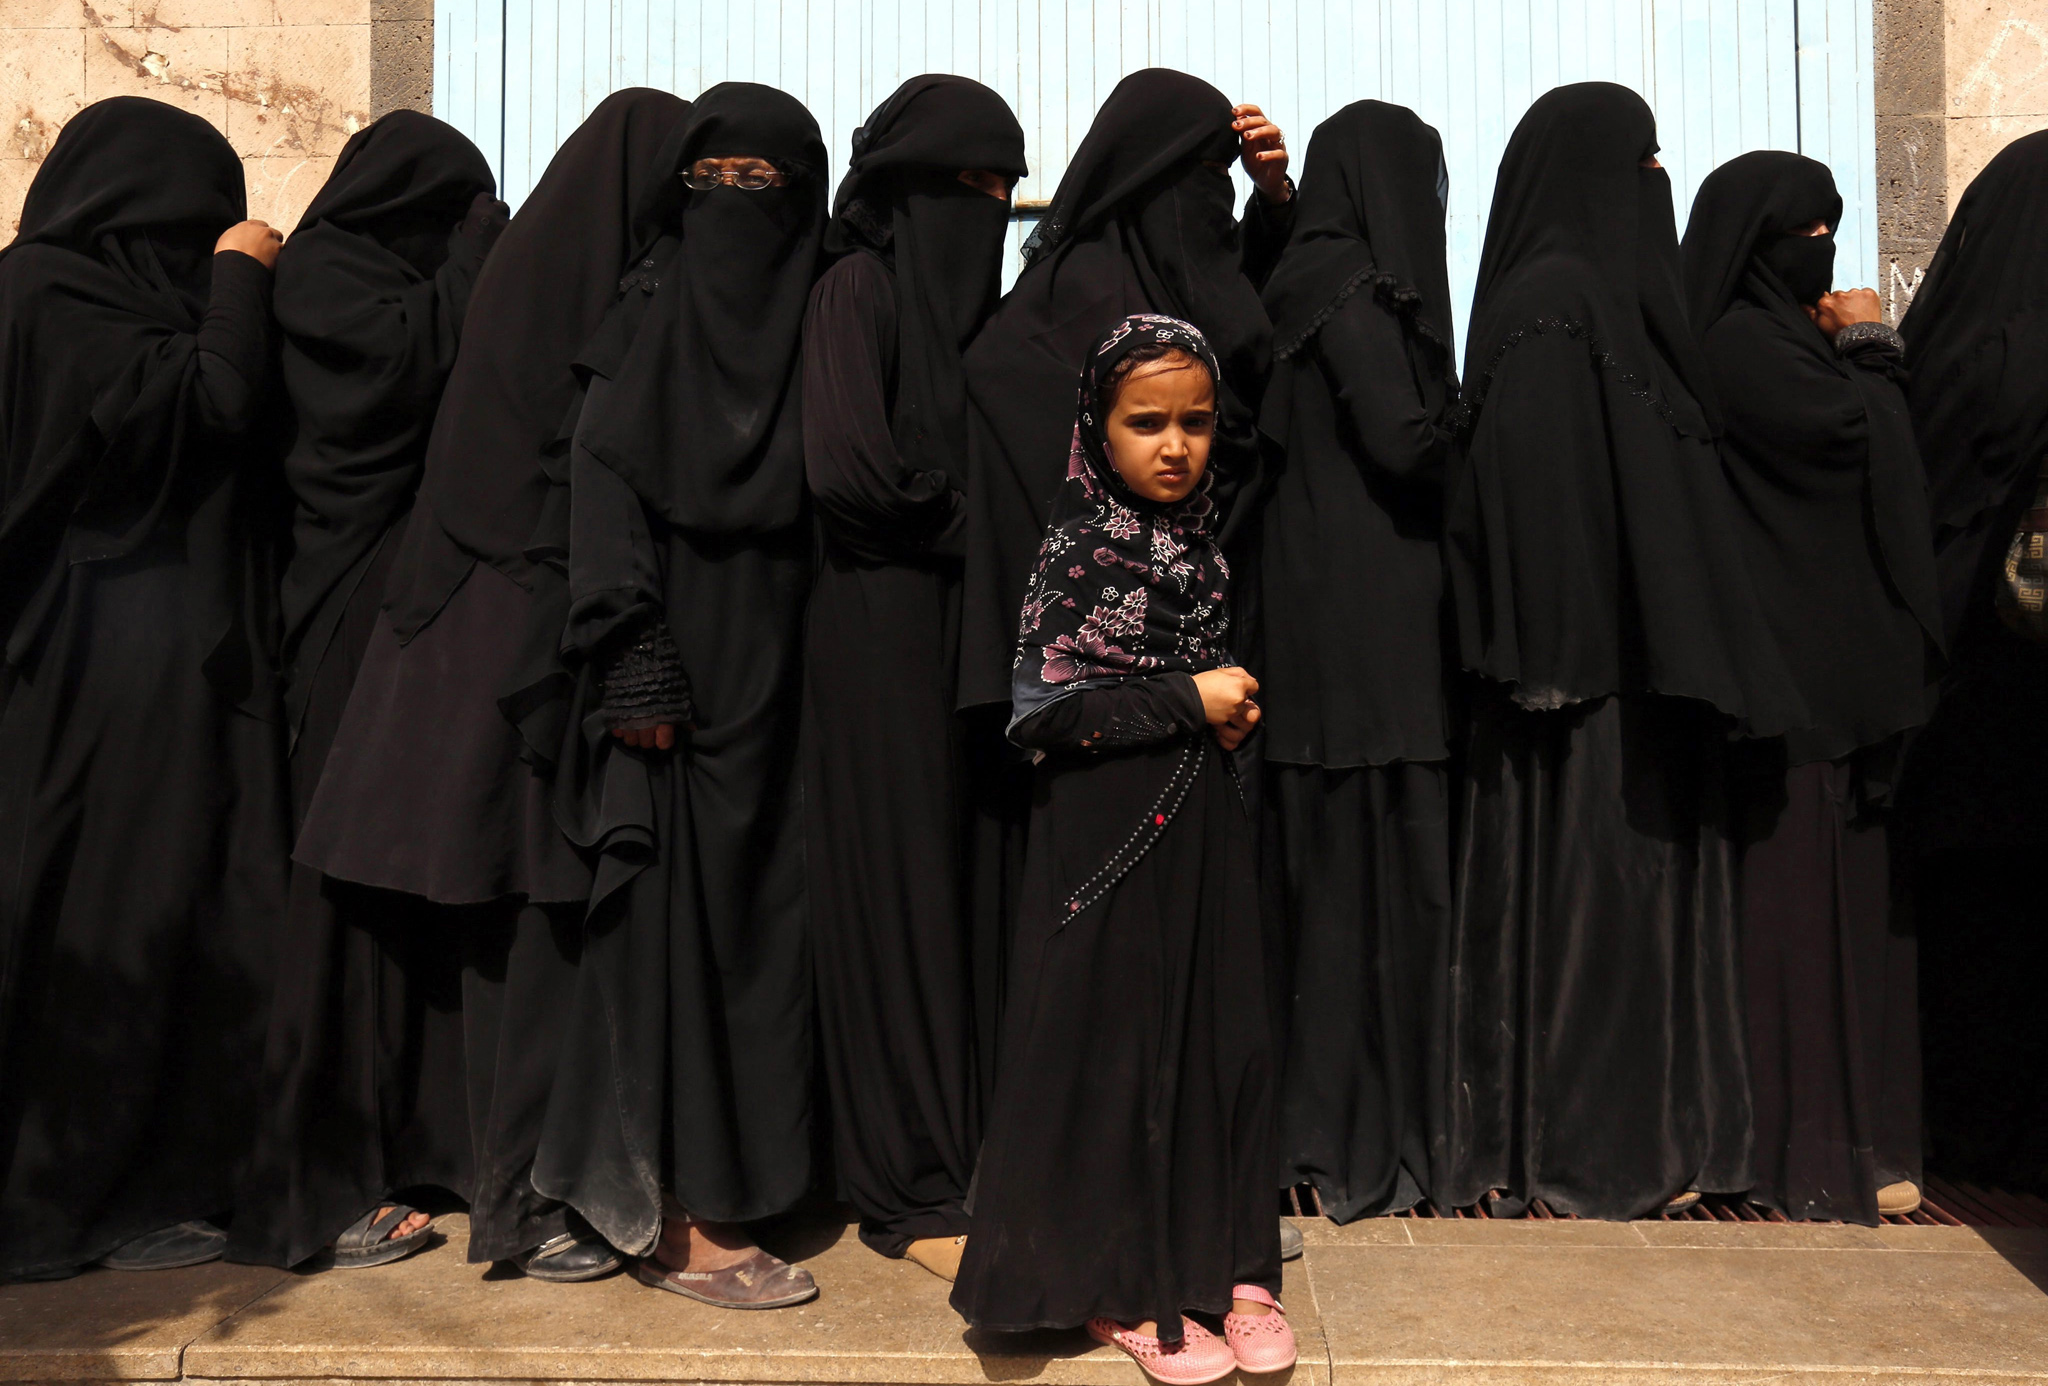 epa05341566 Conflict-affected women line up to receive their families' food rations provided by a local relief group, in Sana'a, Yemen, 02 June 2016. According to reports, the year-long conflict has worsened Yemen's already poor food security situation, leaving 21 million people of the country's 24 million-population facing severely shortages of food and vital supplies 2.5 million others forcibly displaced.  EPA/YAHYA ARHAB